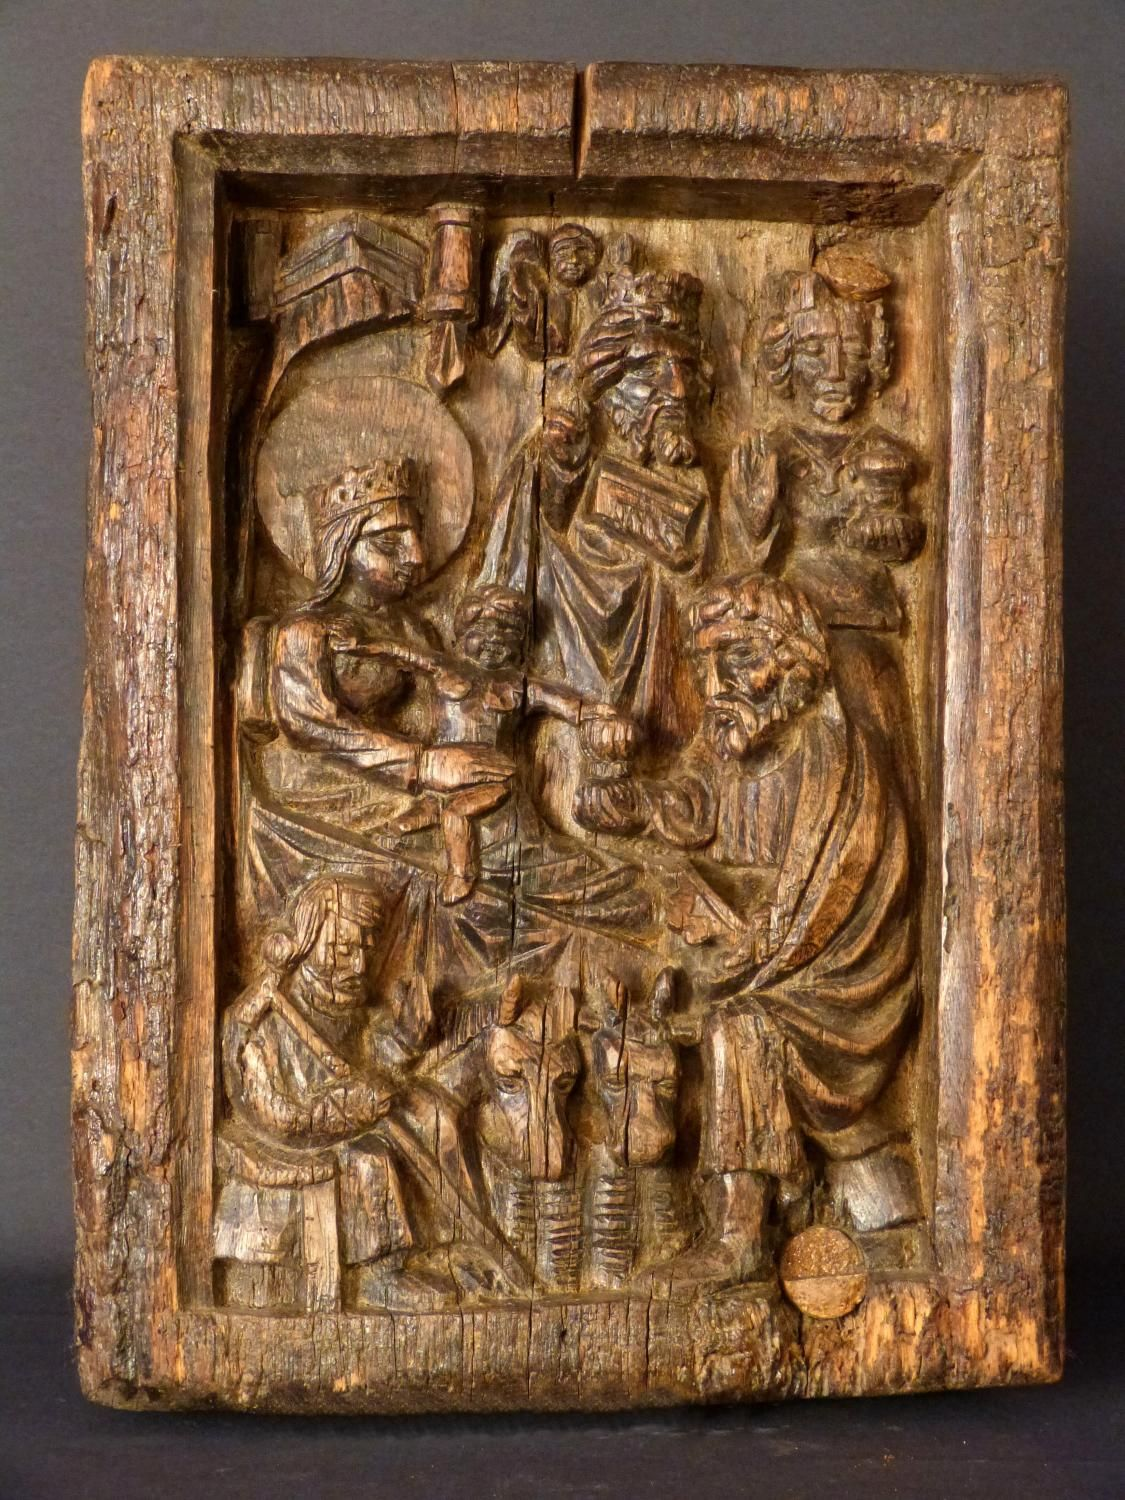 Antique for sale gothic sculpture adoration of the magi